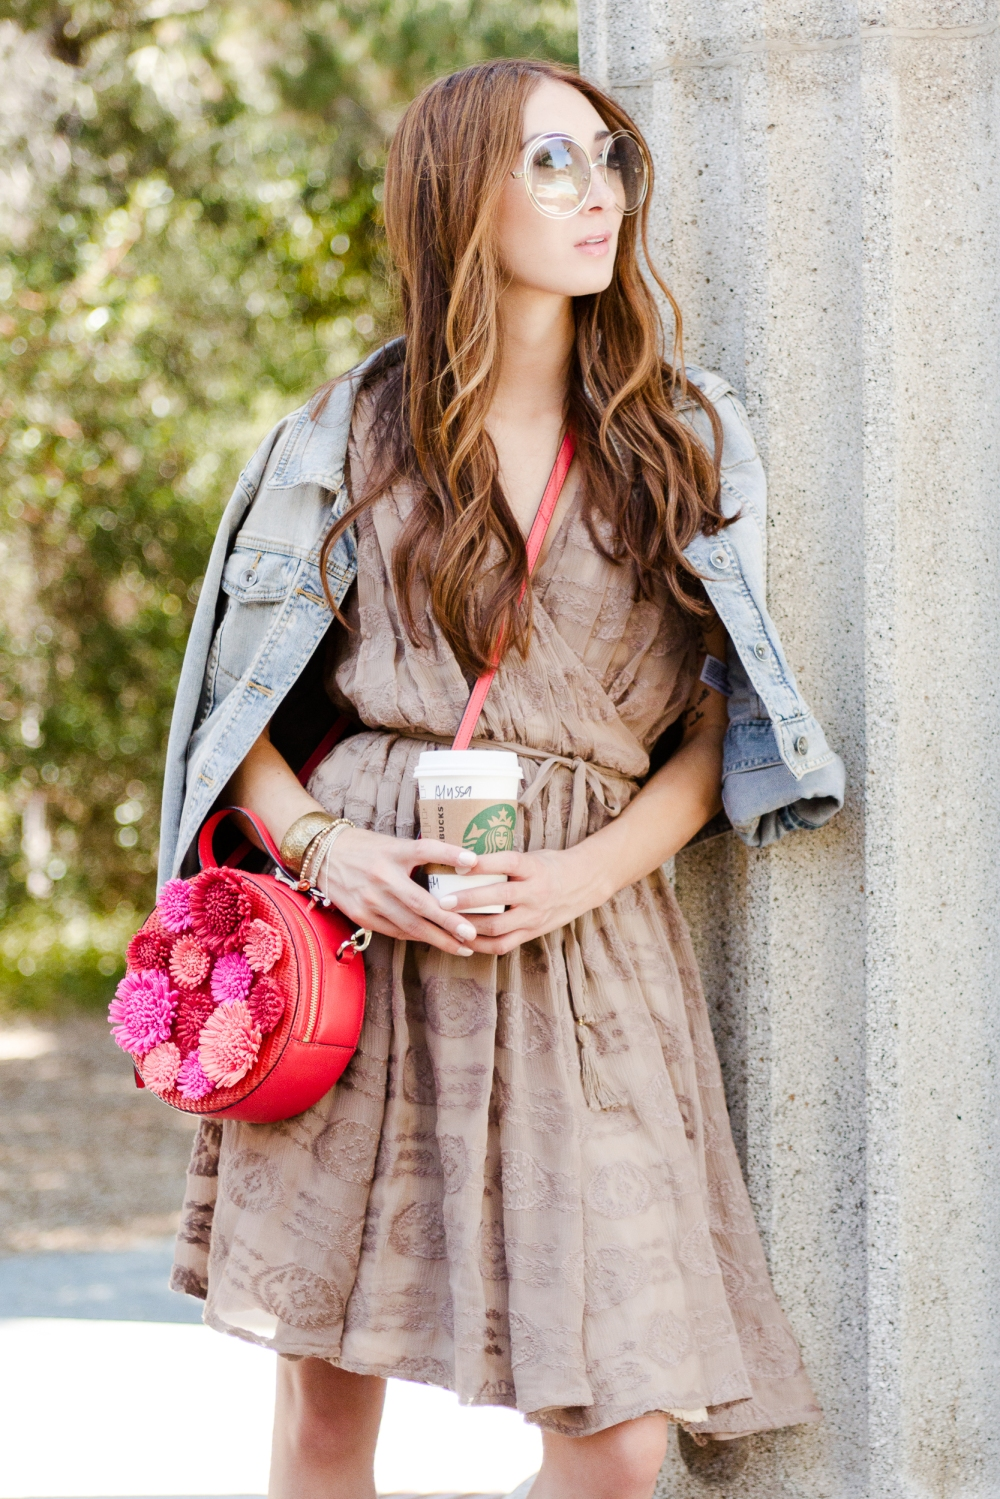 Fall Date Night Outfit in Alyssa Nicole Wrap Dress, Chloe Sunglasses, & Kate Spade Bag